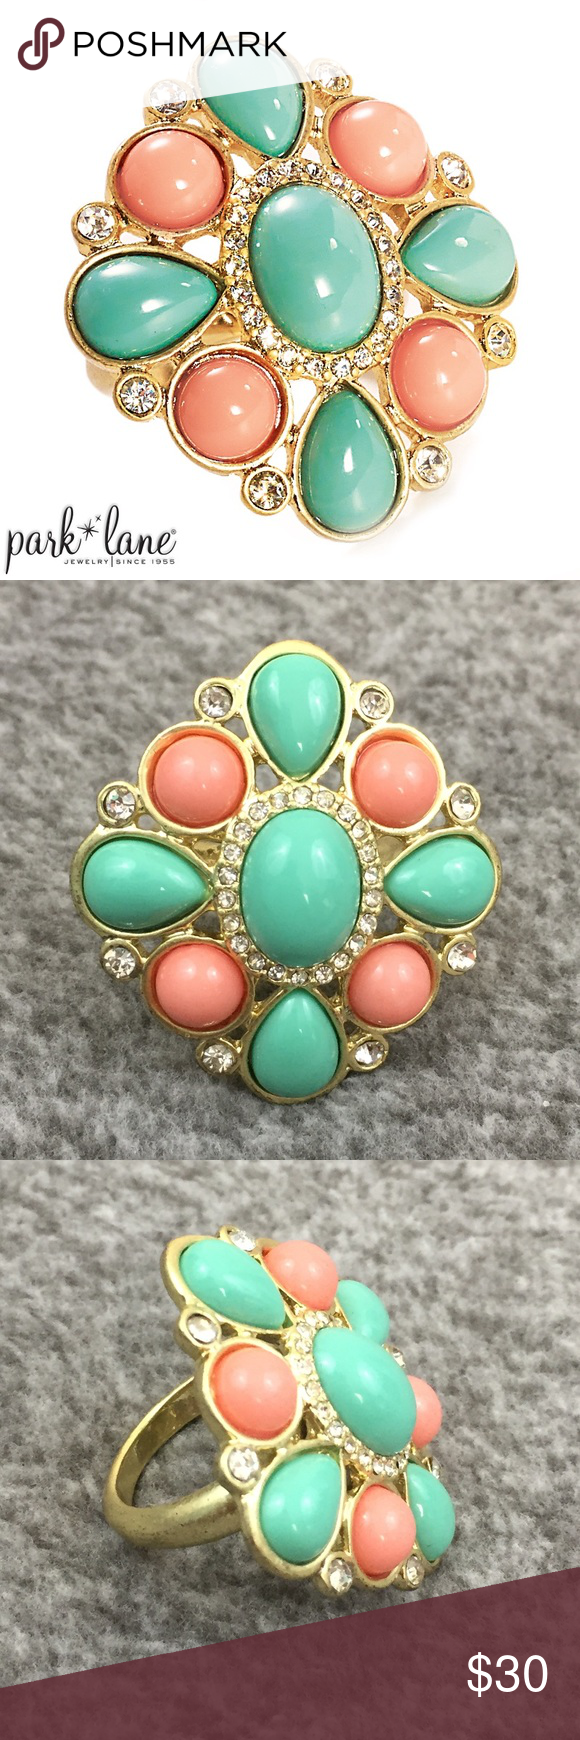 Park Lane Bohemian Ring Size 8 Cabochon gems in turquoise and peachy Coral color are accented with Austrian crystals and set in a bold, matte gold ring. Park Lane Jewelry Rings